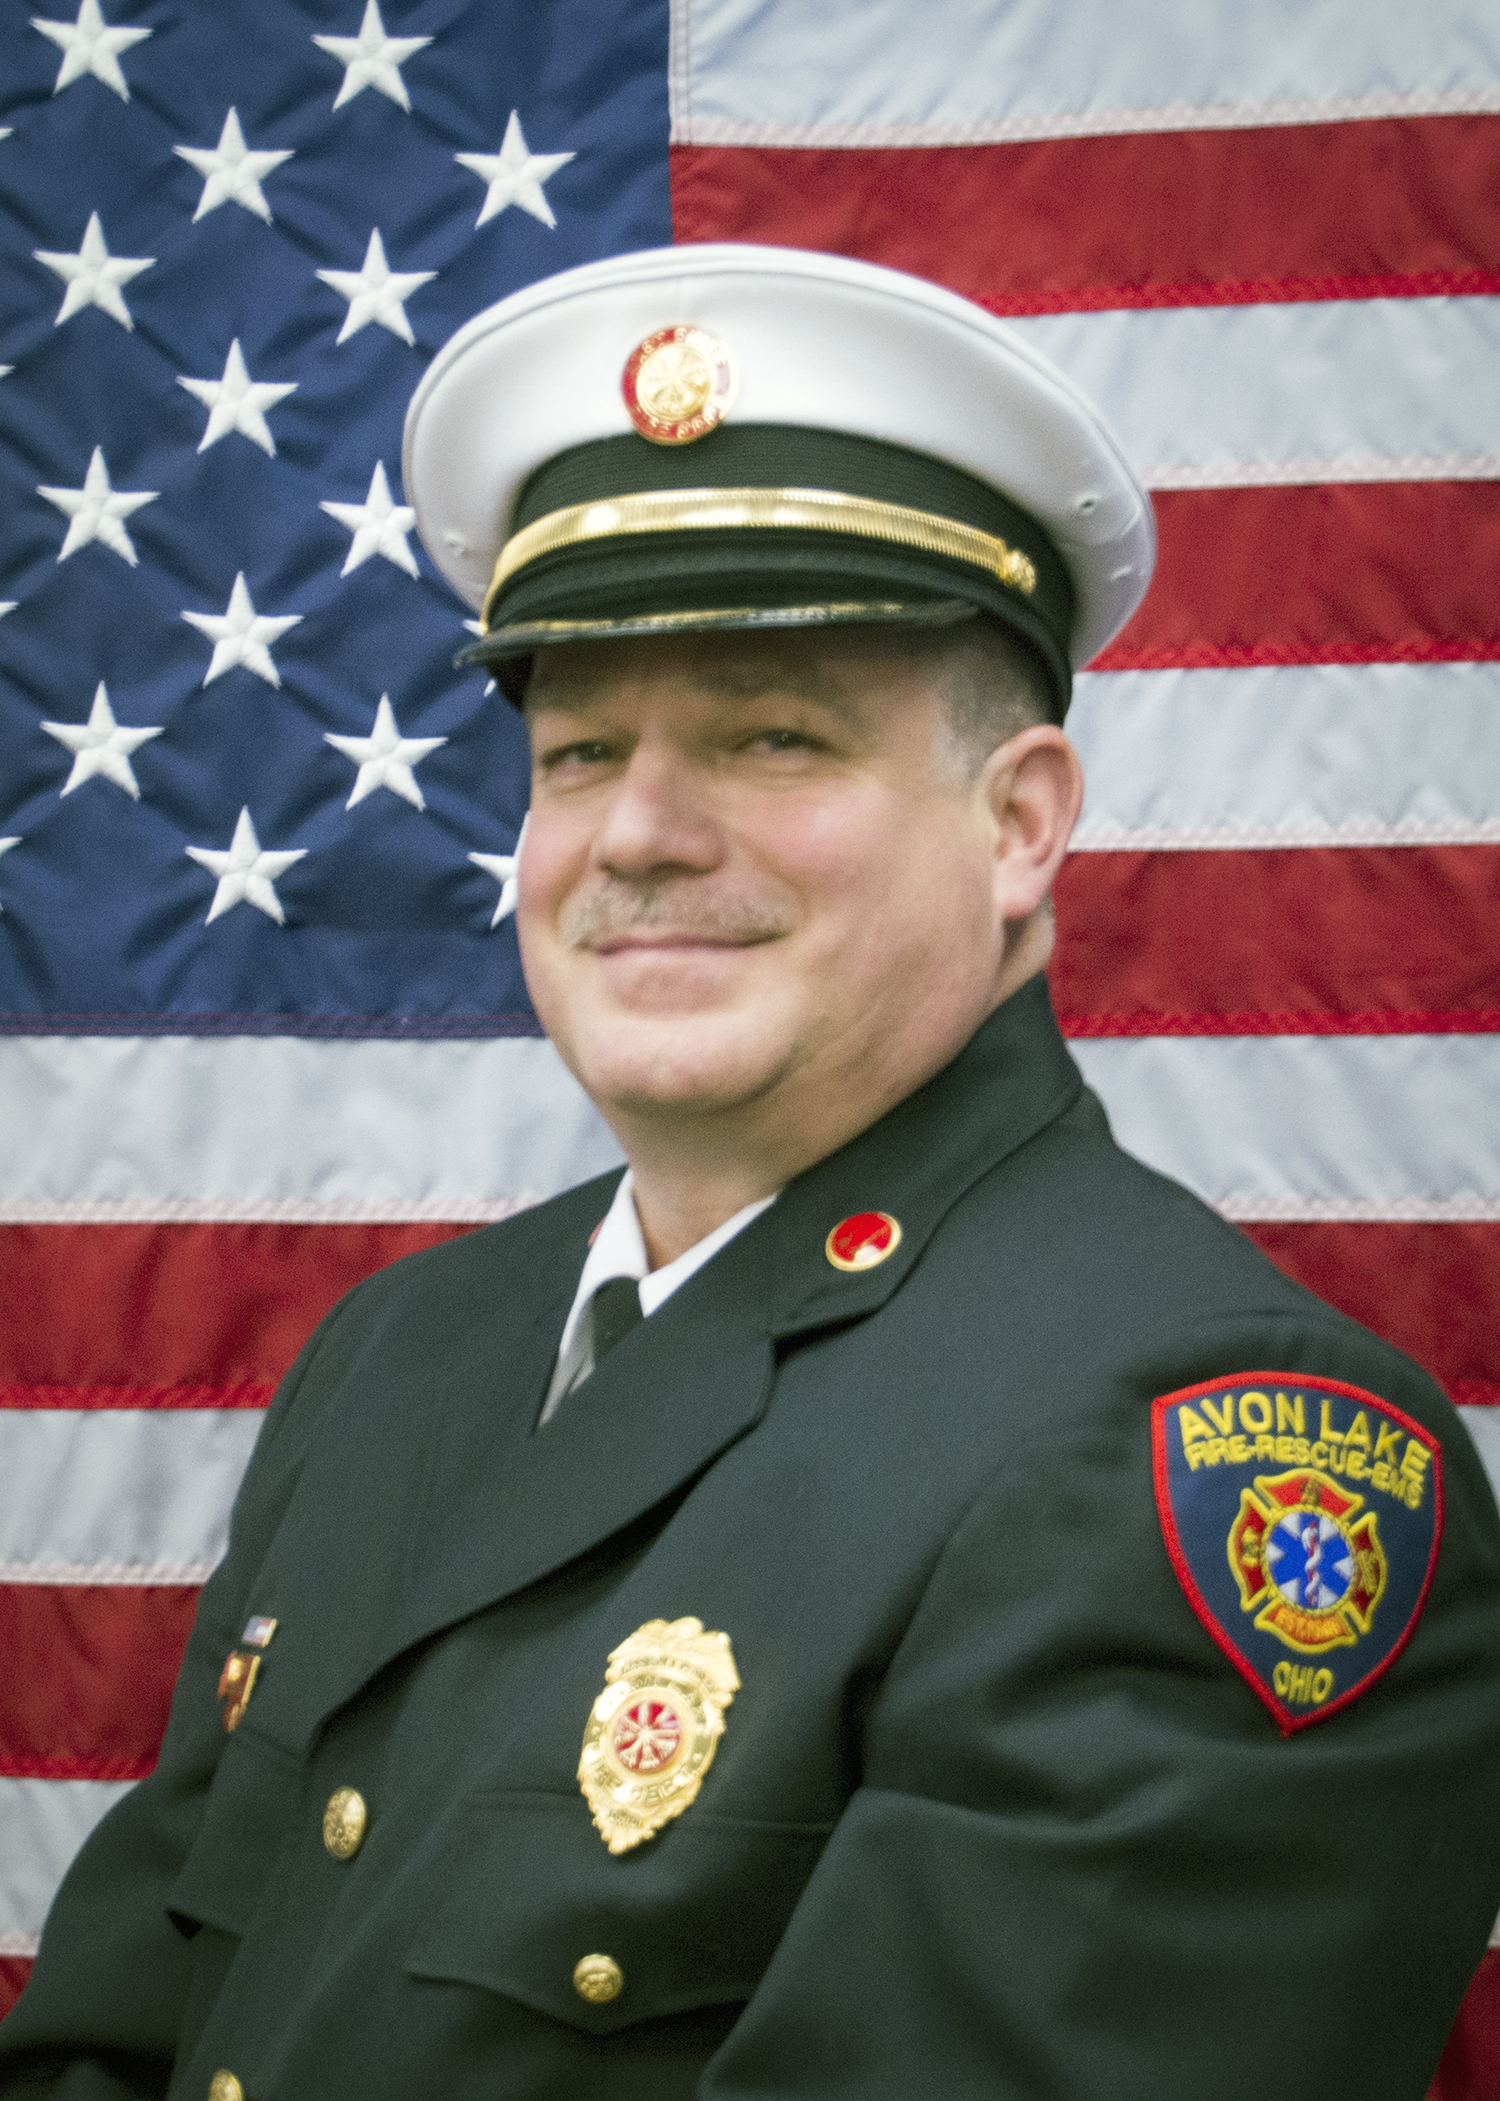 Assistant Chief Steve Peter